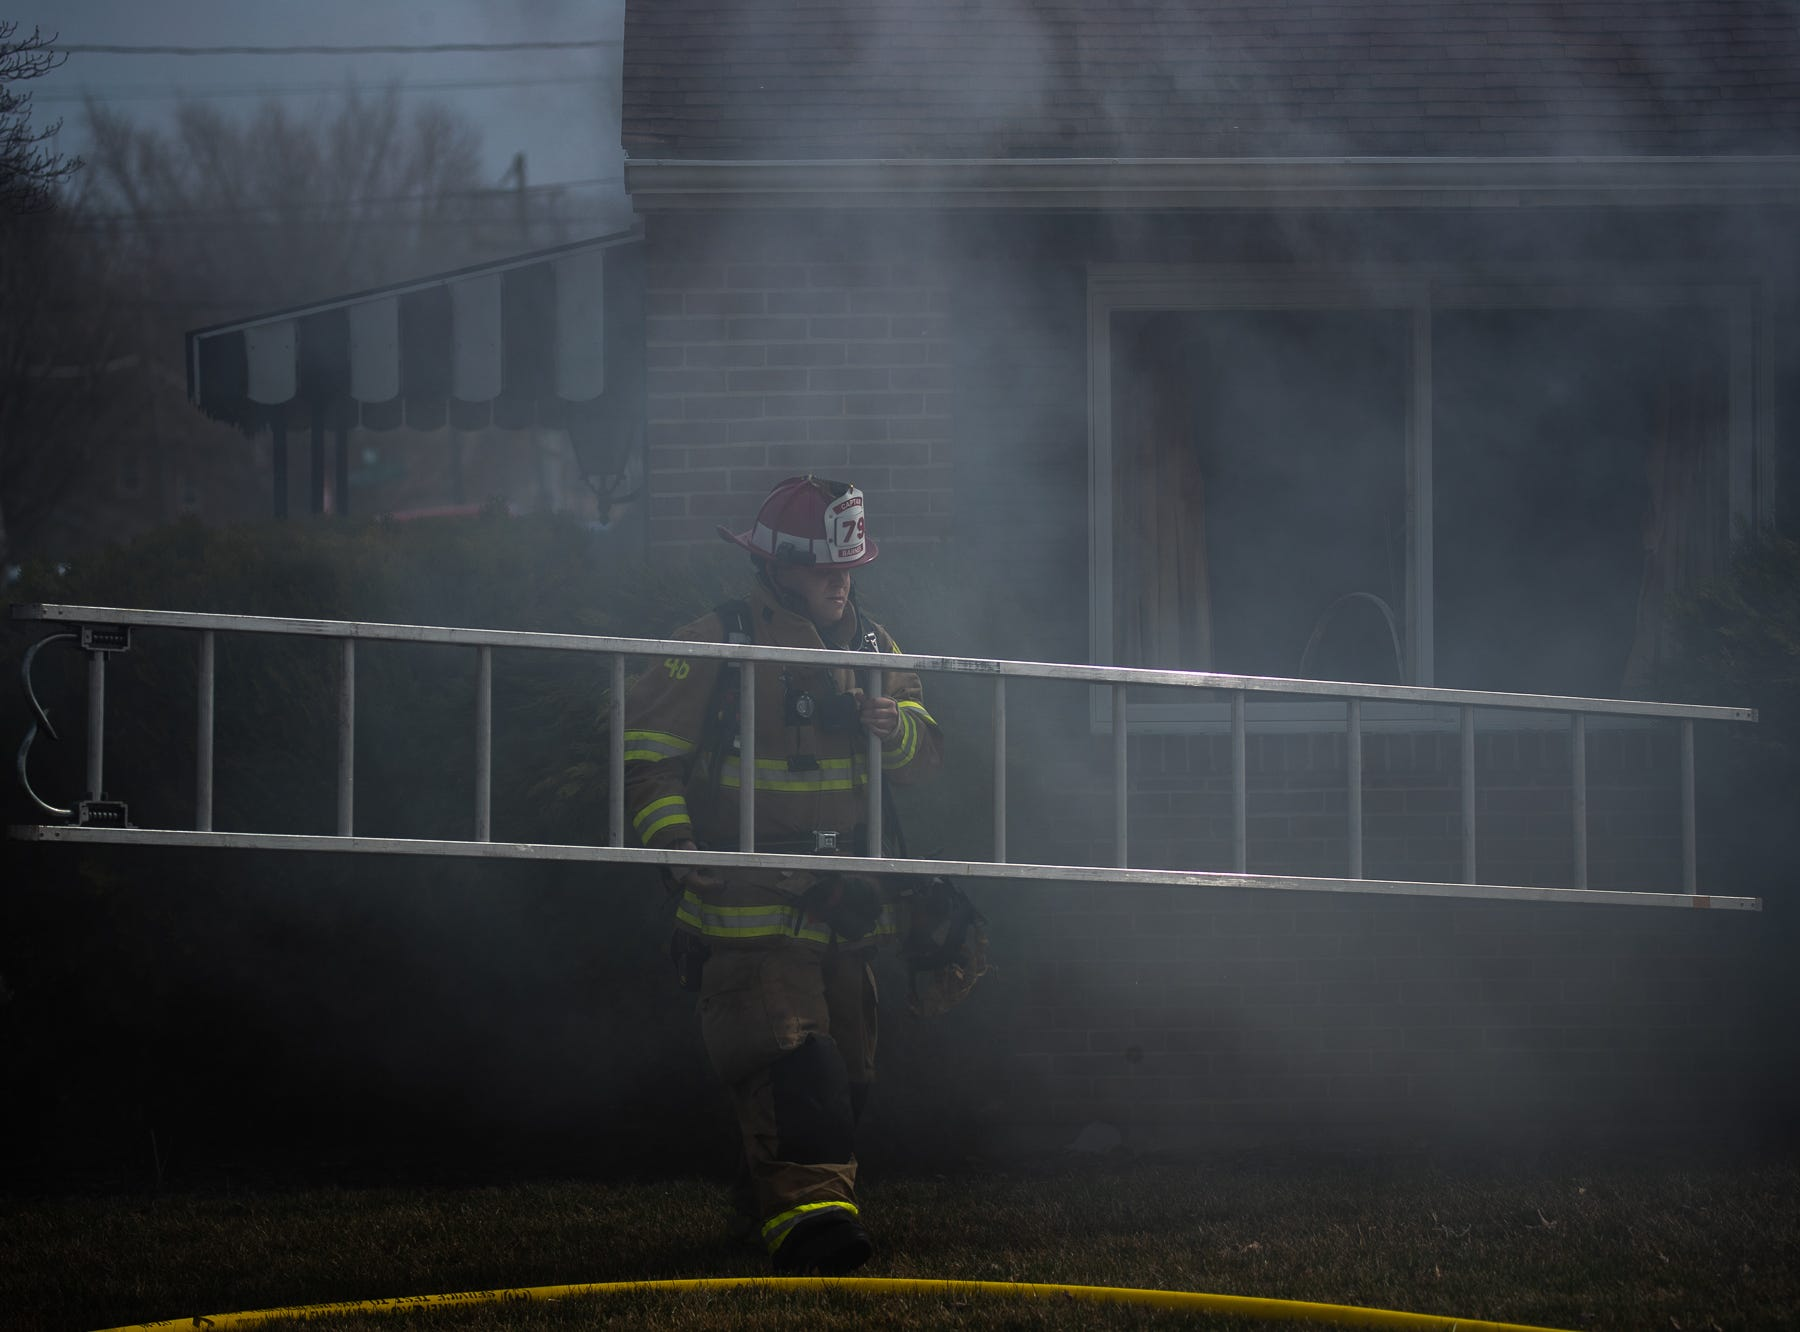 Firefighter Matt Barnes carries a ground ladder at the scene of a house fire on the 100 block of Mumma Ave., Saturday, March 30, 2019, in Penn Township. No one was injured in the fire, which appears to have been an accidental fire in the kitchen, said Hanover Area Fire & Rescue Chief Tony Clousher.